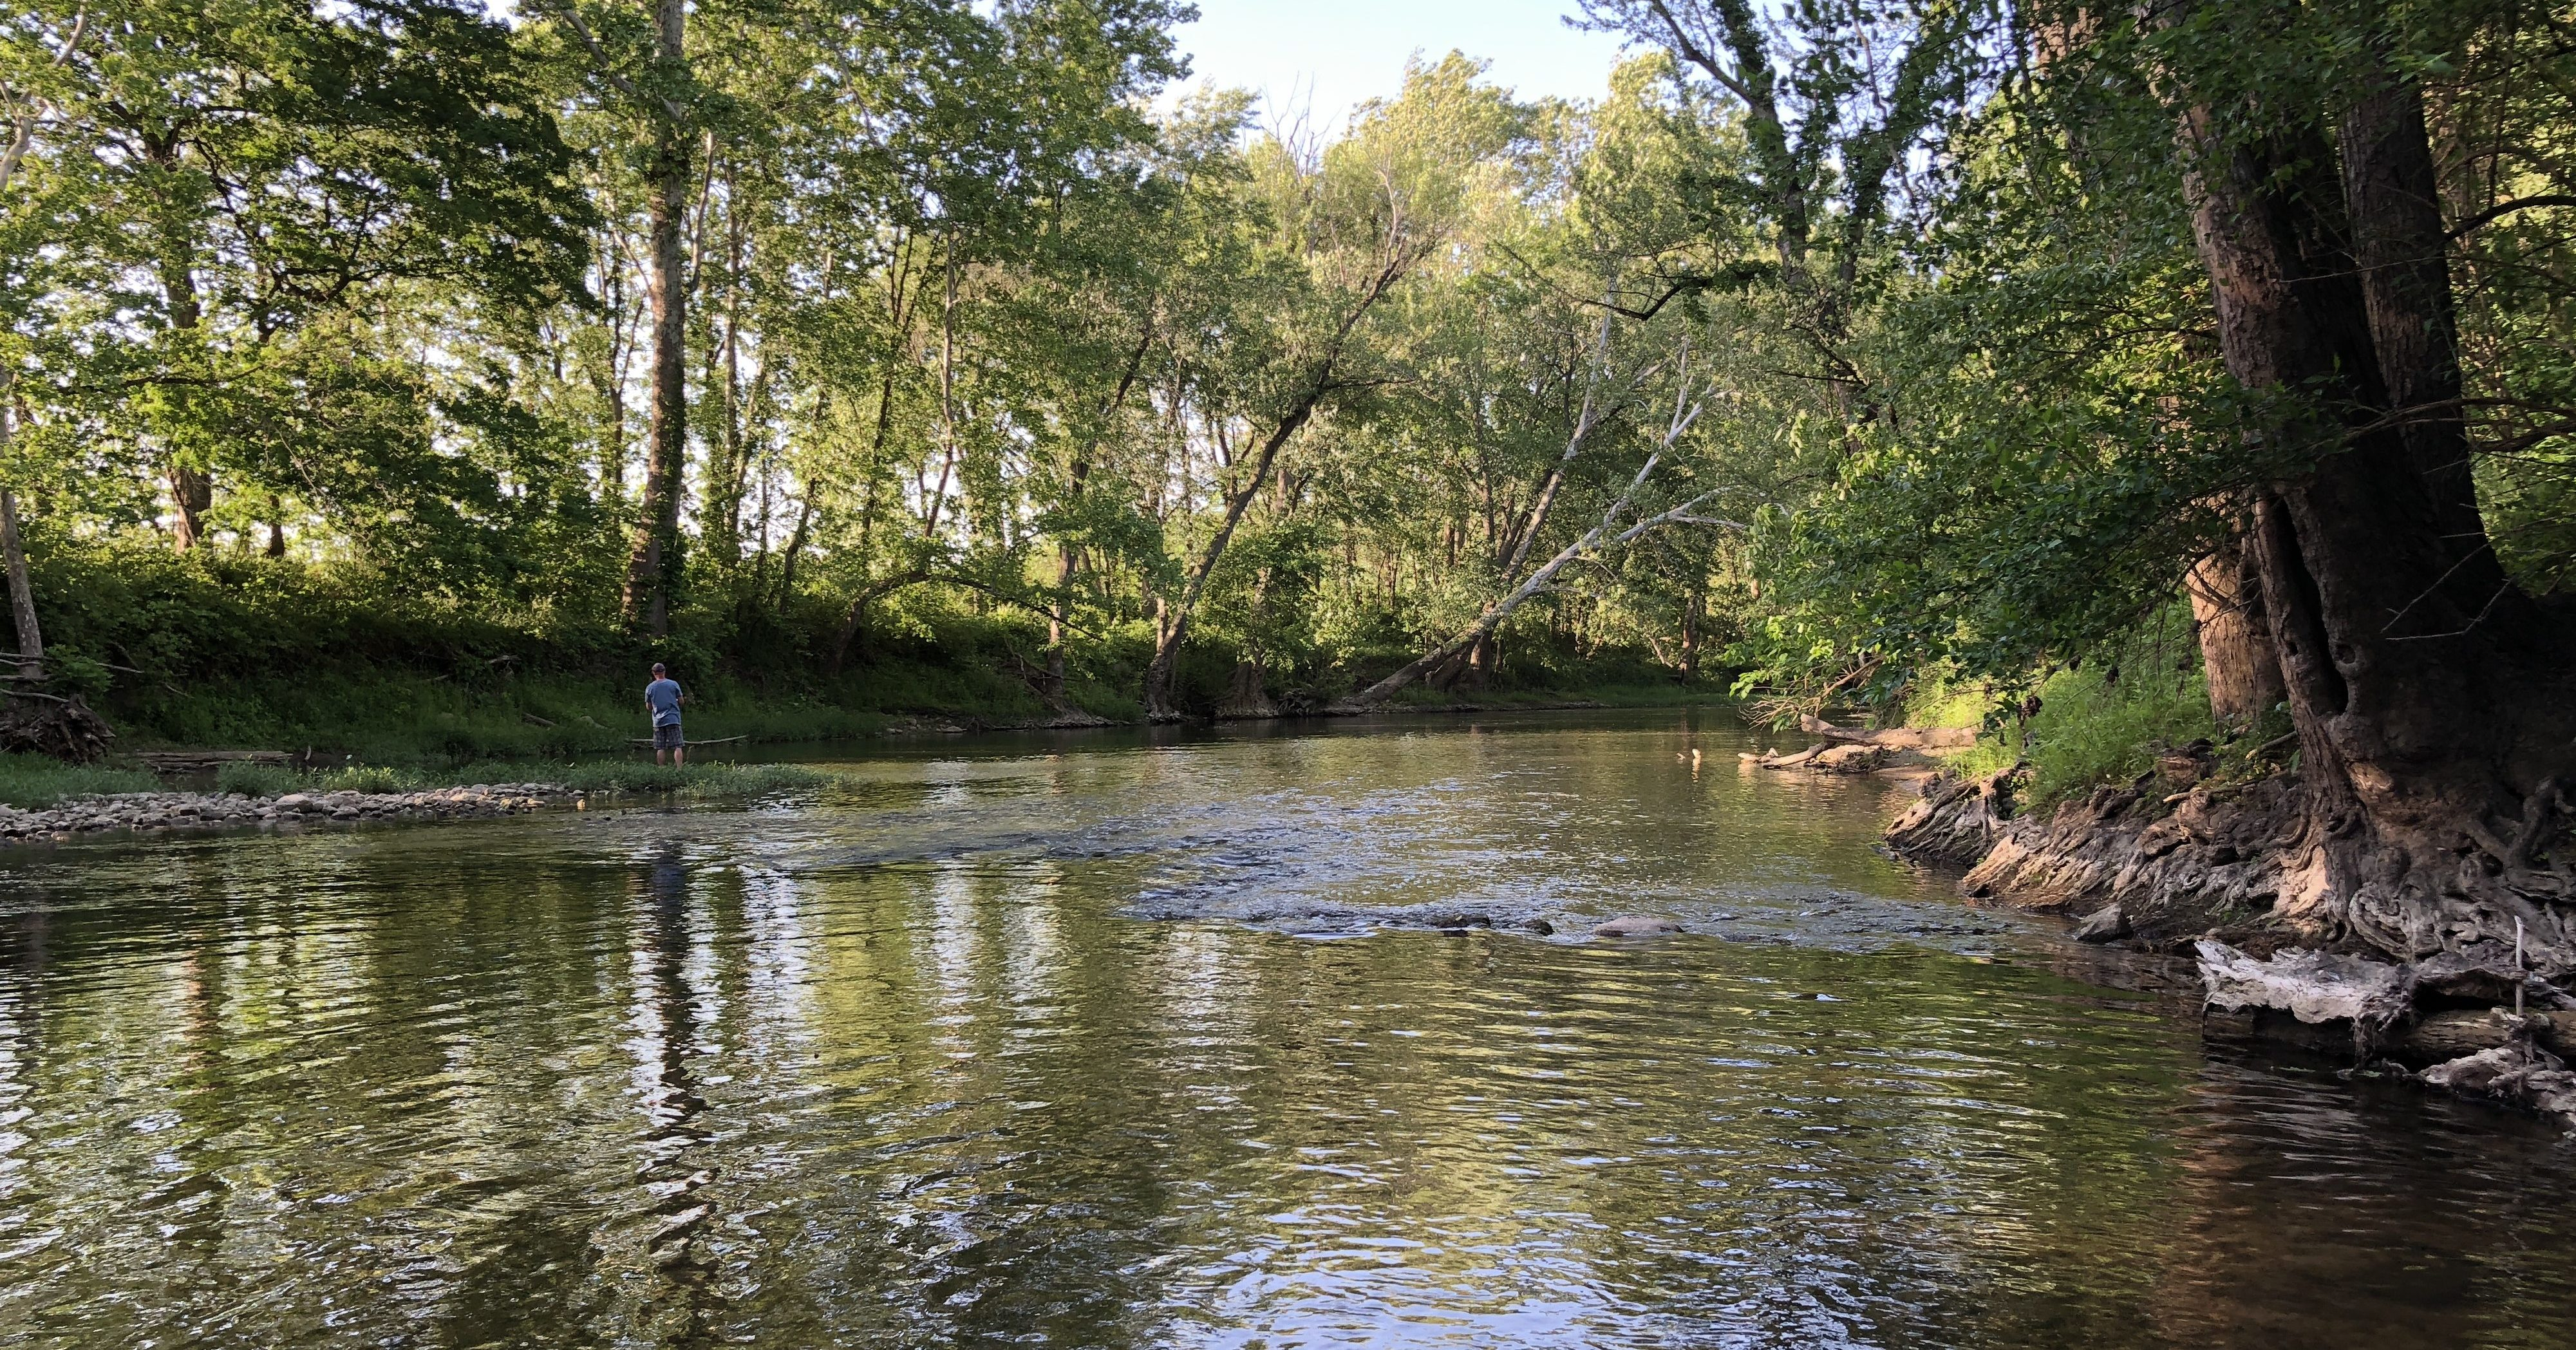 On the banks of the Wildcat Creek